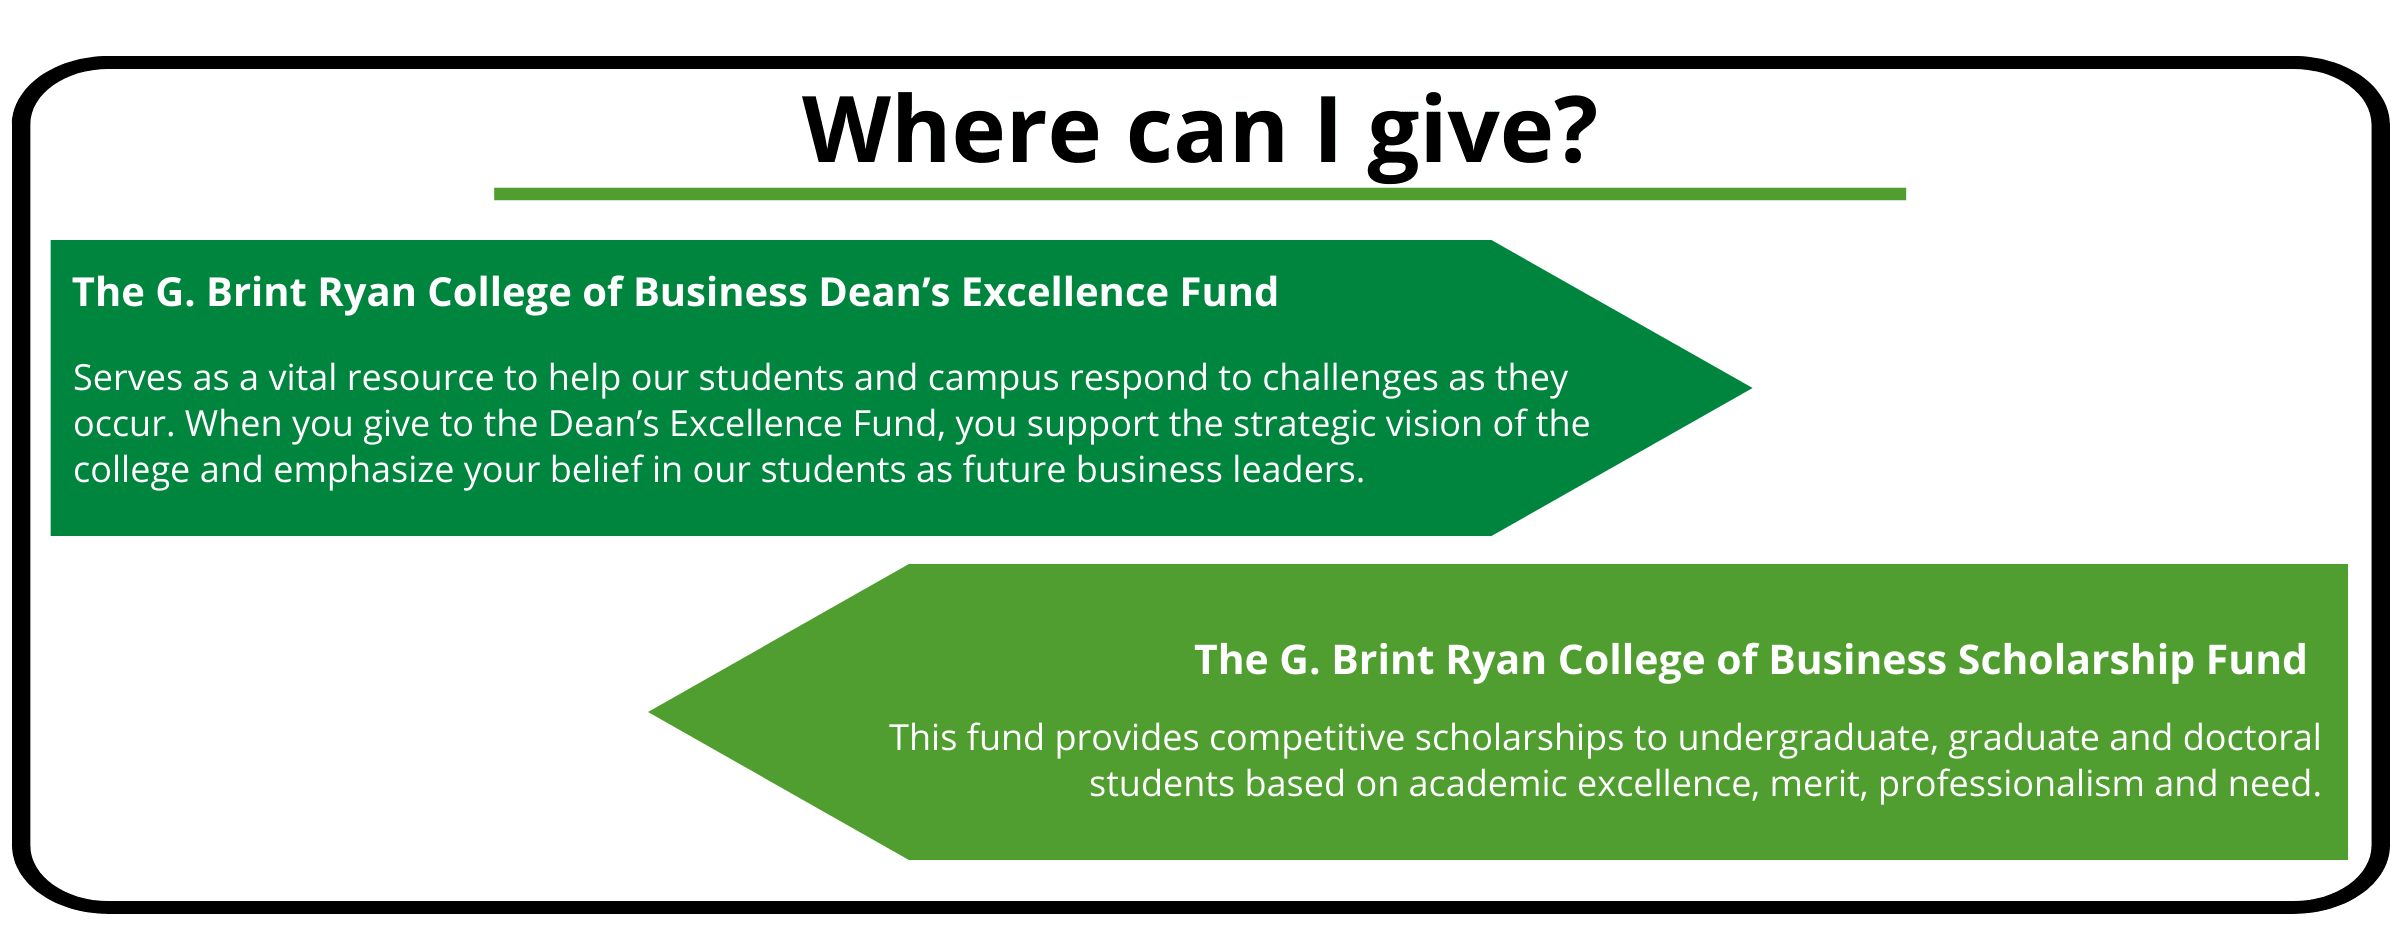 The G. Brint Ryan College of Business Dean's Excellence Fund – Serves as a vital resource to help our students and campus respond to challenges as they occur. When you give to the Dean's Excellence Fund, you support the strategic vision of the college and emphasize your belief in our students as future business leaders. The G. Brint Ryan College of Business Scholarship Fund – This fund provides competitive scholarships to undergraduate, graduate and doctoral students based on academic excellence, merit, professionalism and need.